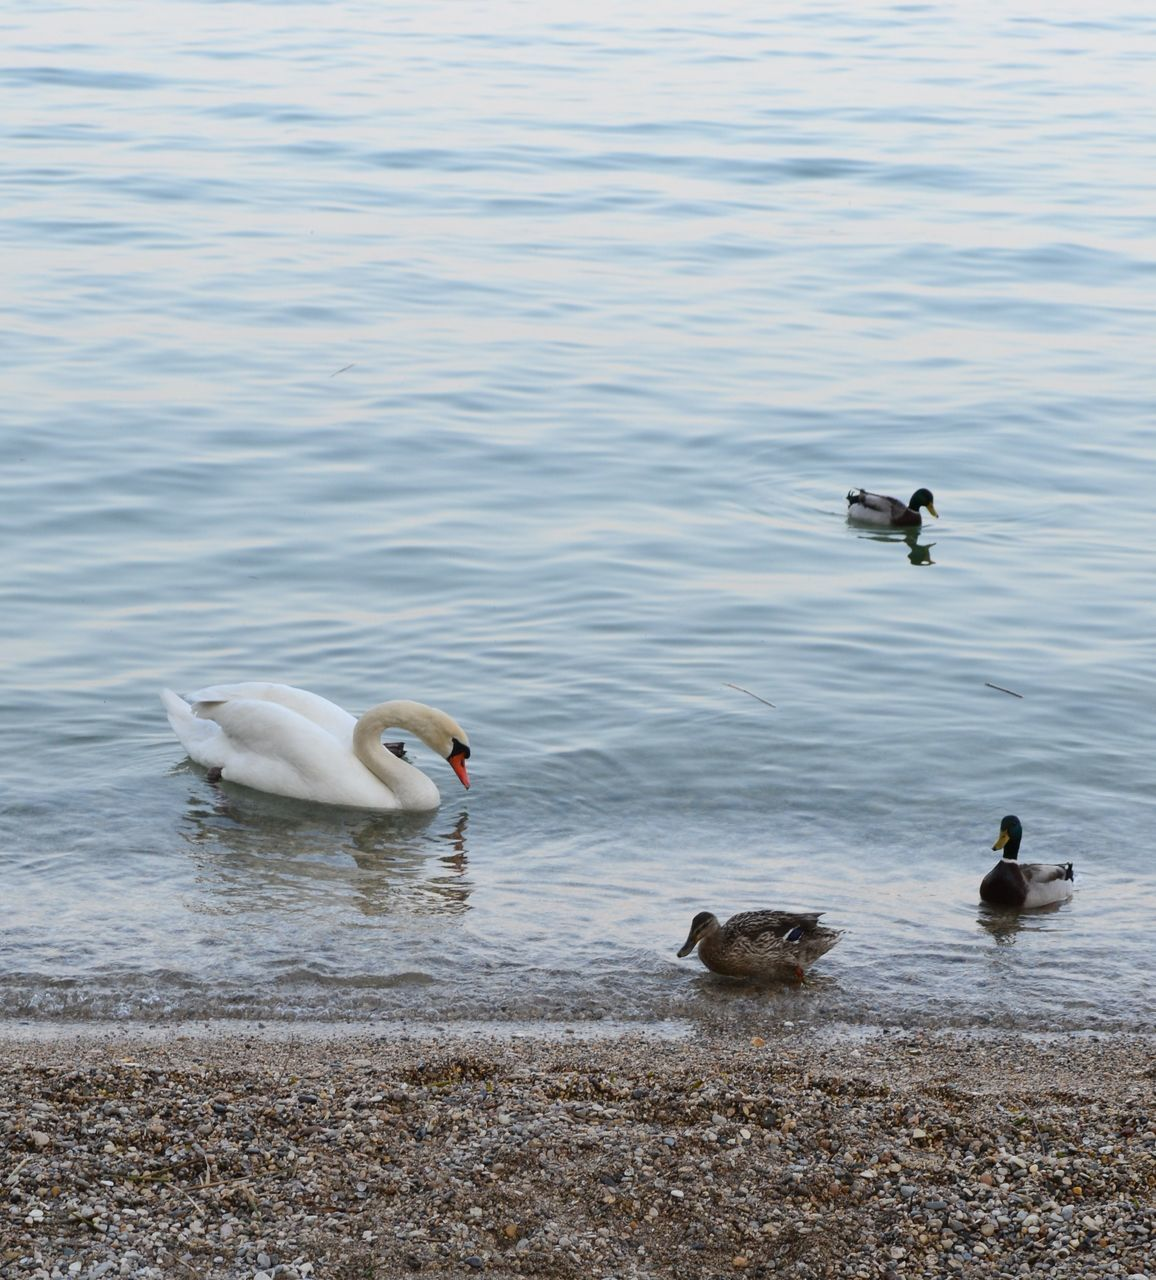 bird, group of animals, water, animals in the wild, lake, animal themes, animal wildlife, animal, swimming, vertebrate, no people, waterfront, water bird, young animal, nature, day, duck, young bird, poultry, animal family, outdoors, floating on water, cygnet, gosling